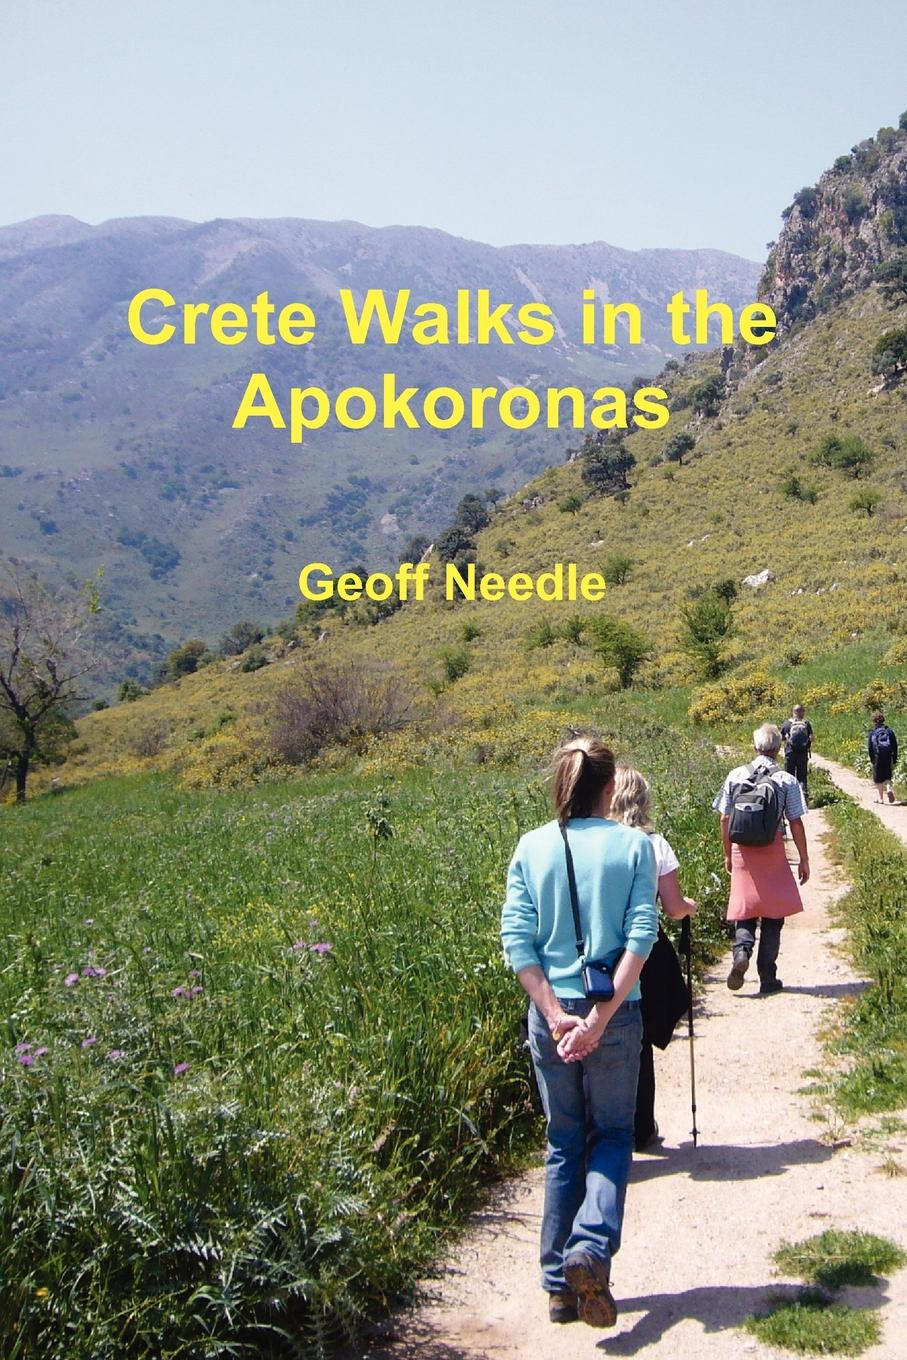 Geoff Needle Crete Walks in the Apokoronas